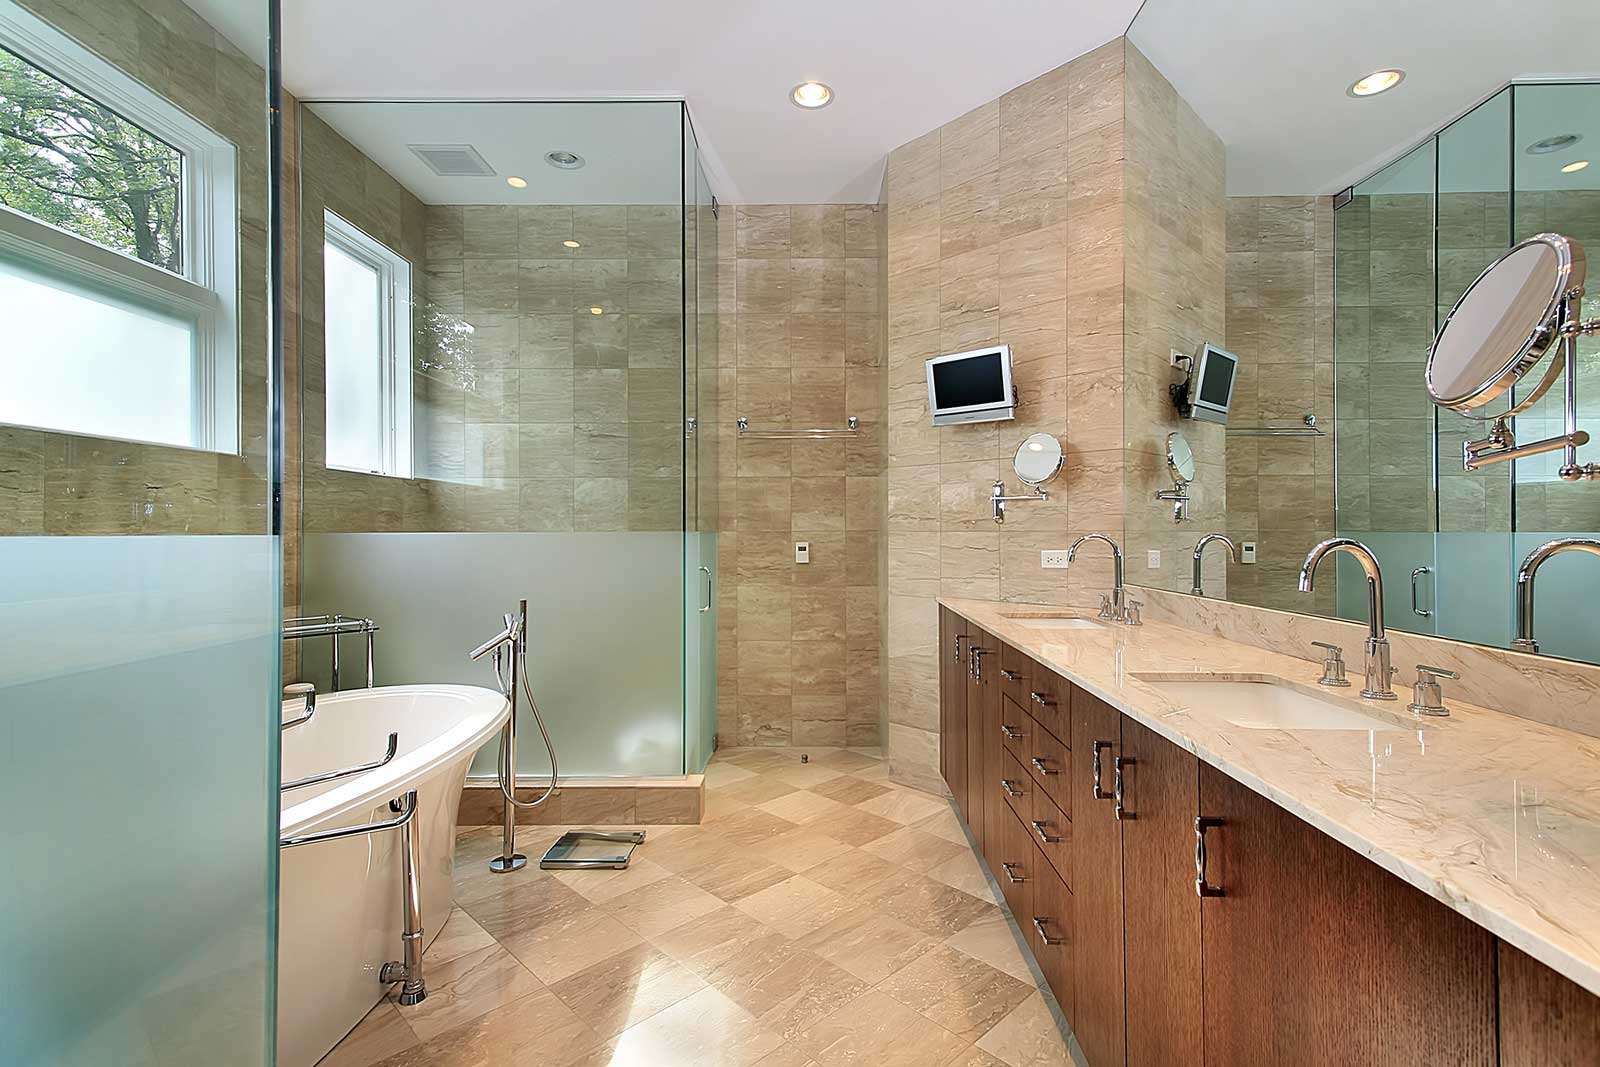 Glass Shower Doors Frameless - Shower Doors Near Me by Shower Doors of Charlotte NC